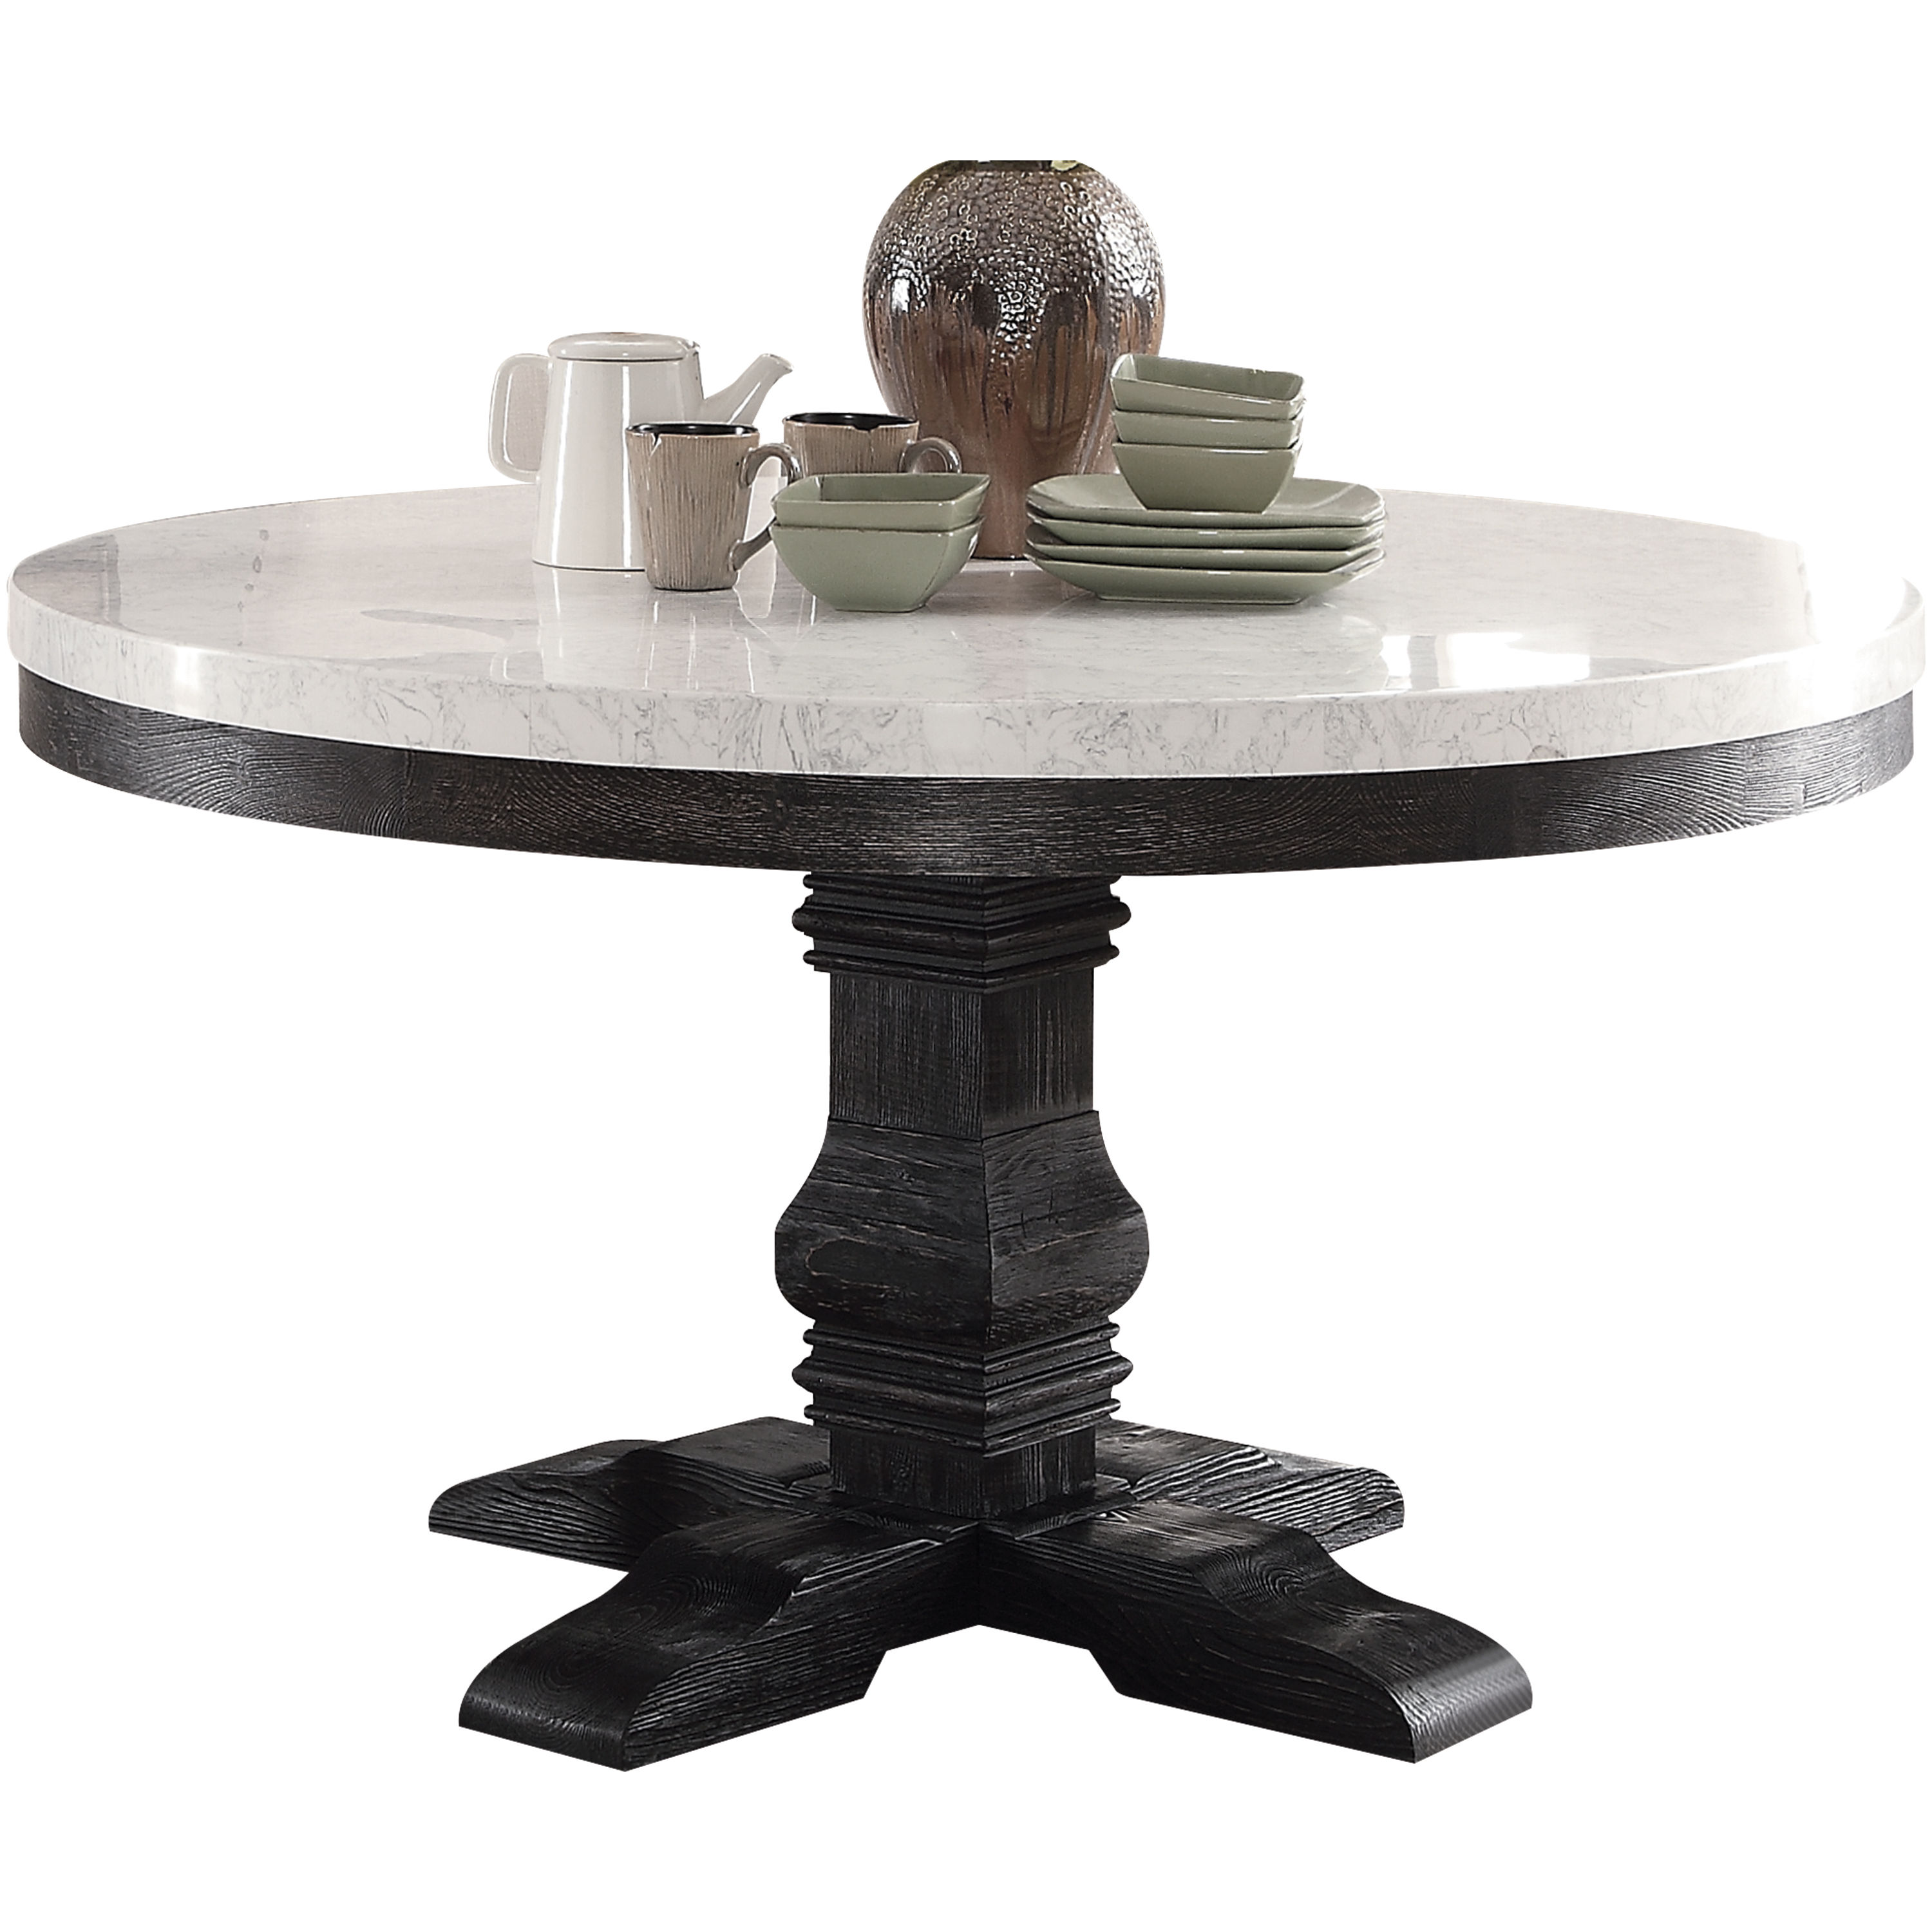 acme furniture nolan pedestal dining table the classy home acm accent click enlarge antique white entry contemporary kitchen tables silver bedroom lamps two door cabinet changing